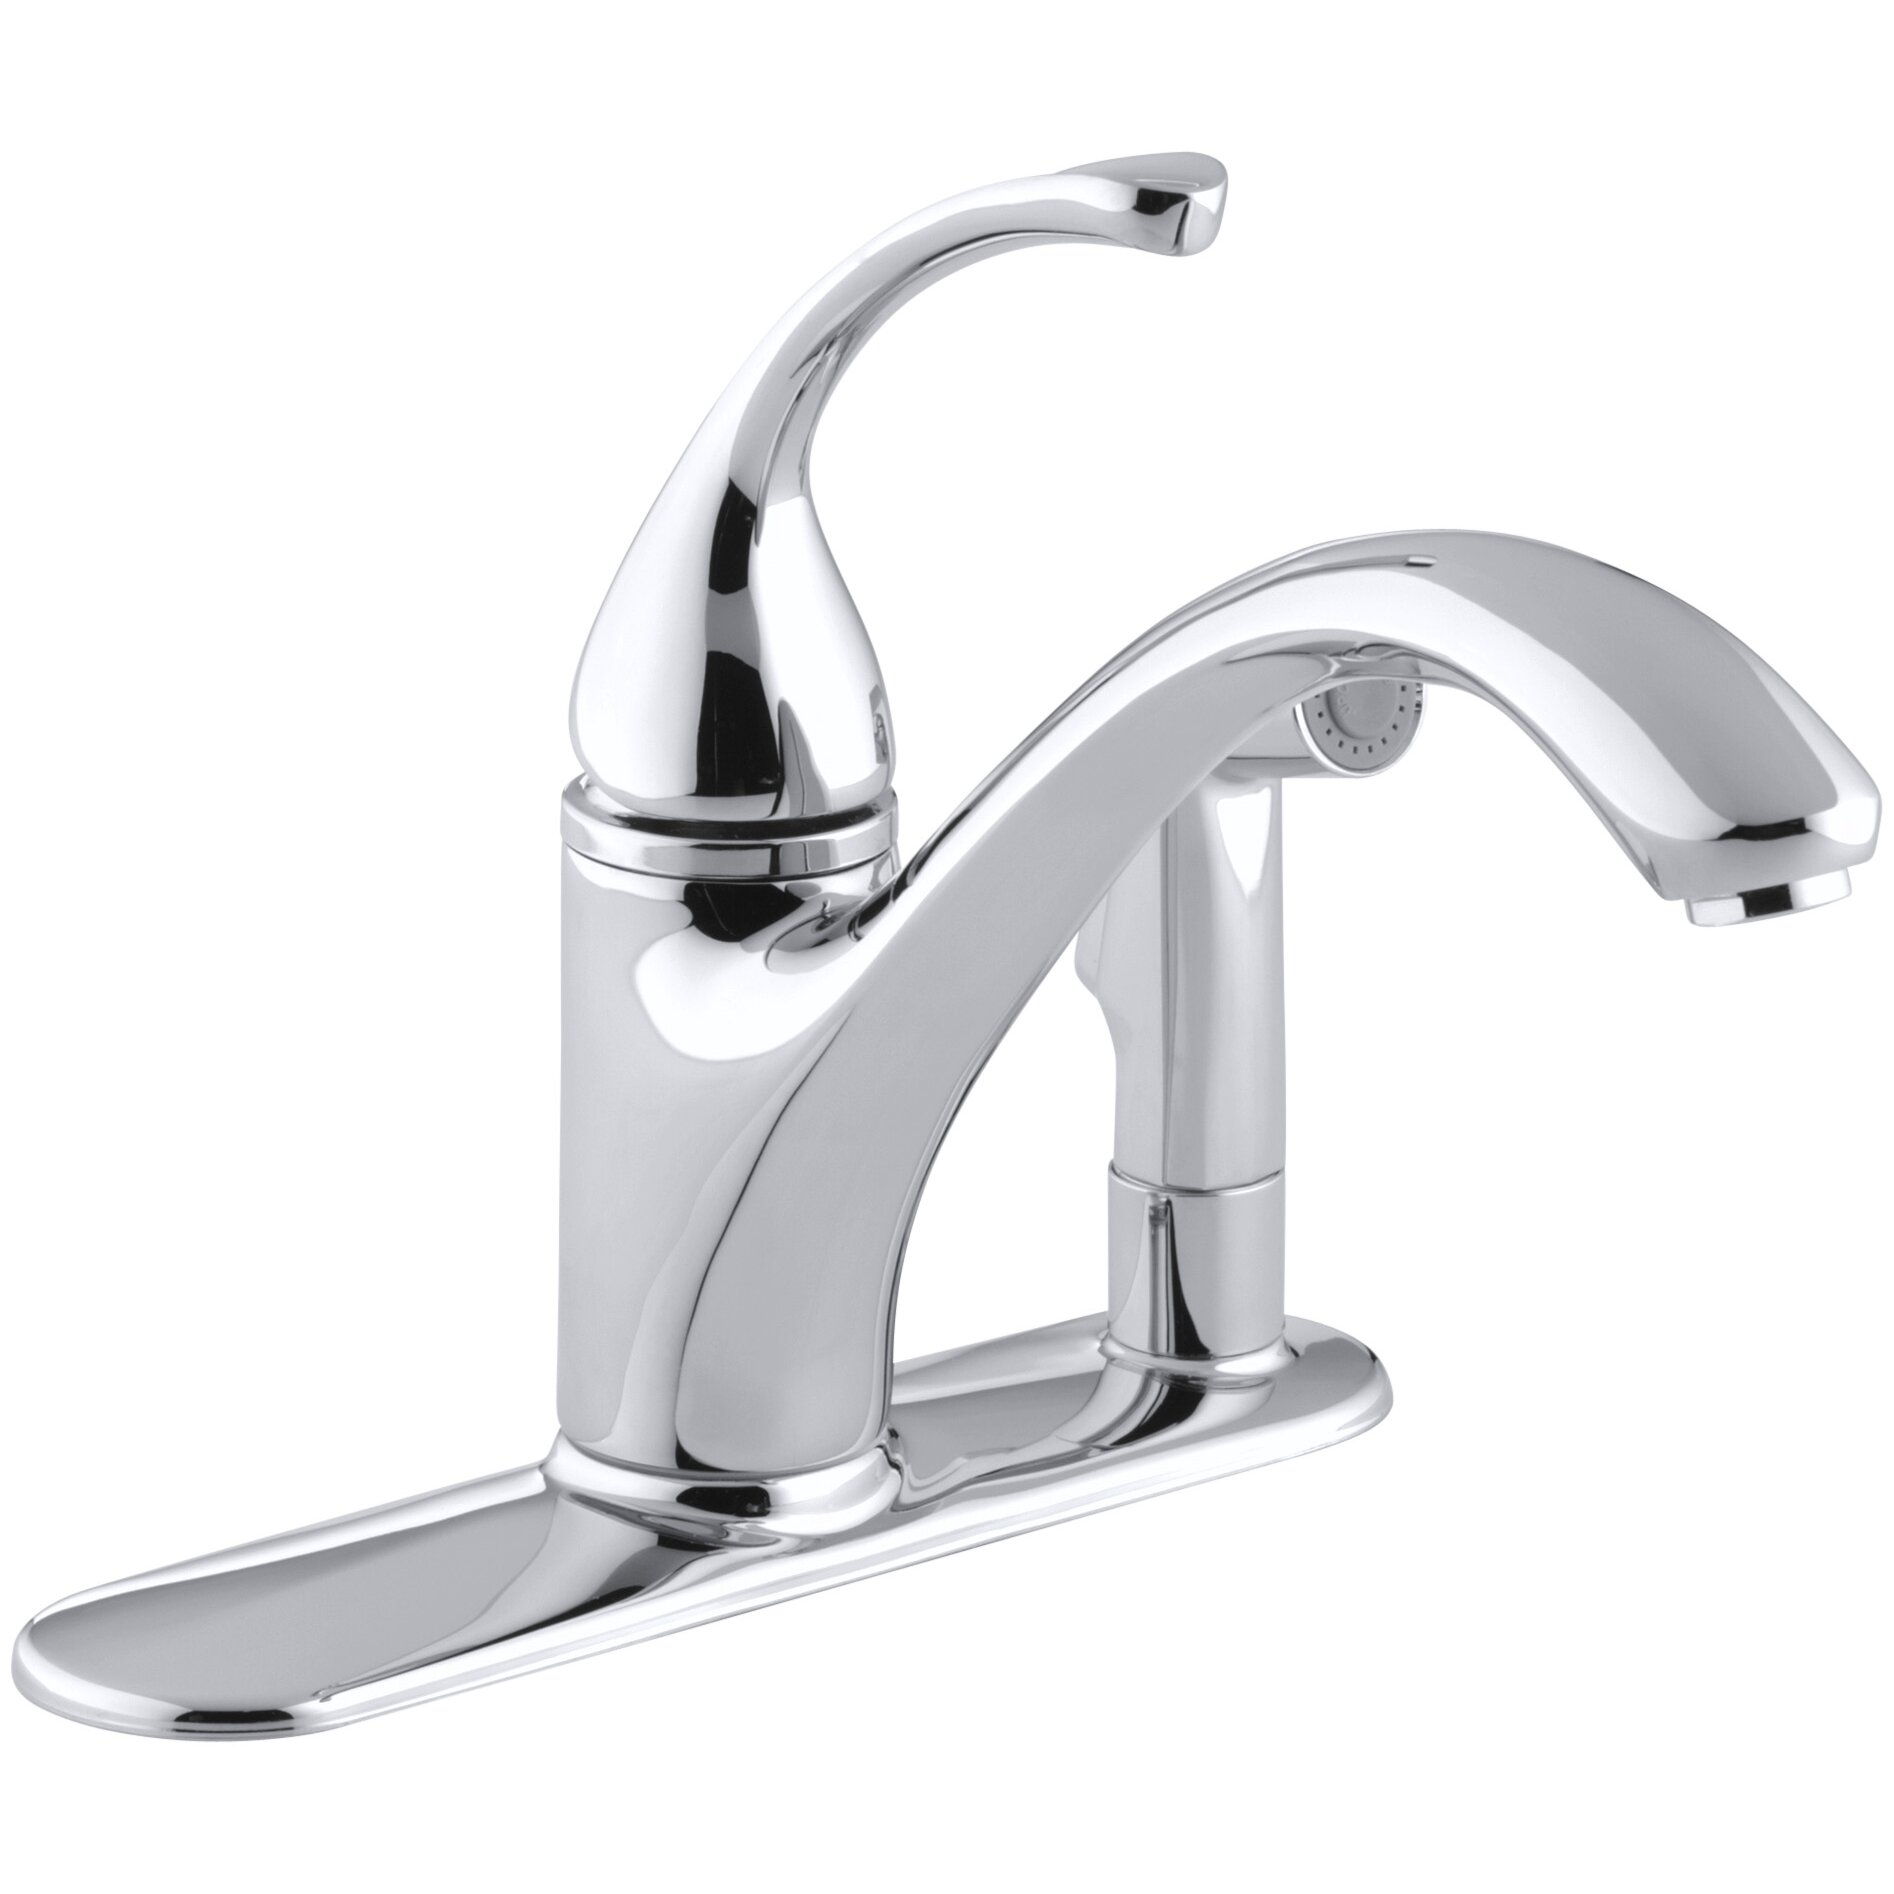 Kitchen Faucet Installation Instructions Kitchen Sink Sprayer Installation Instructions